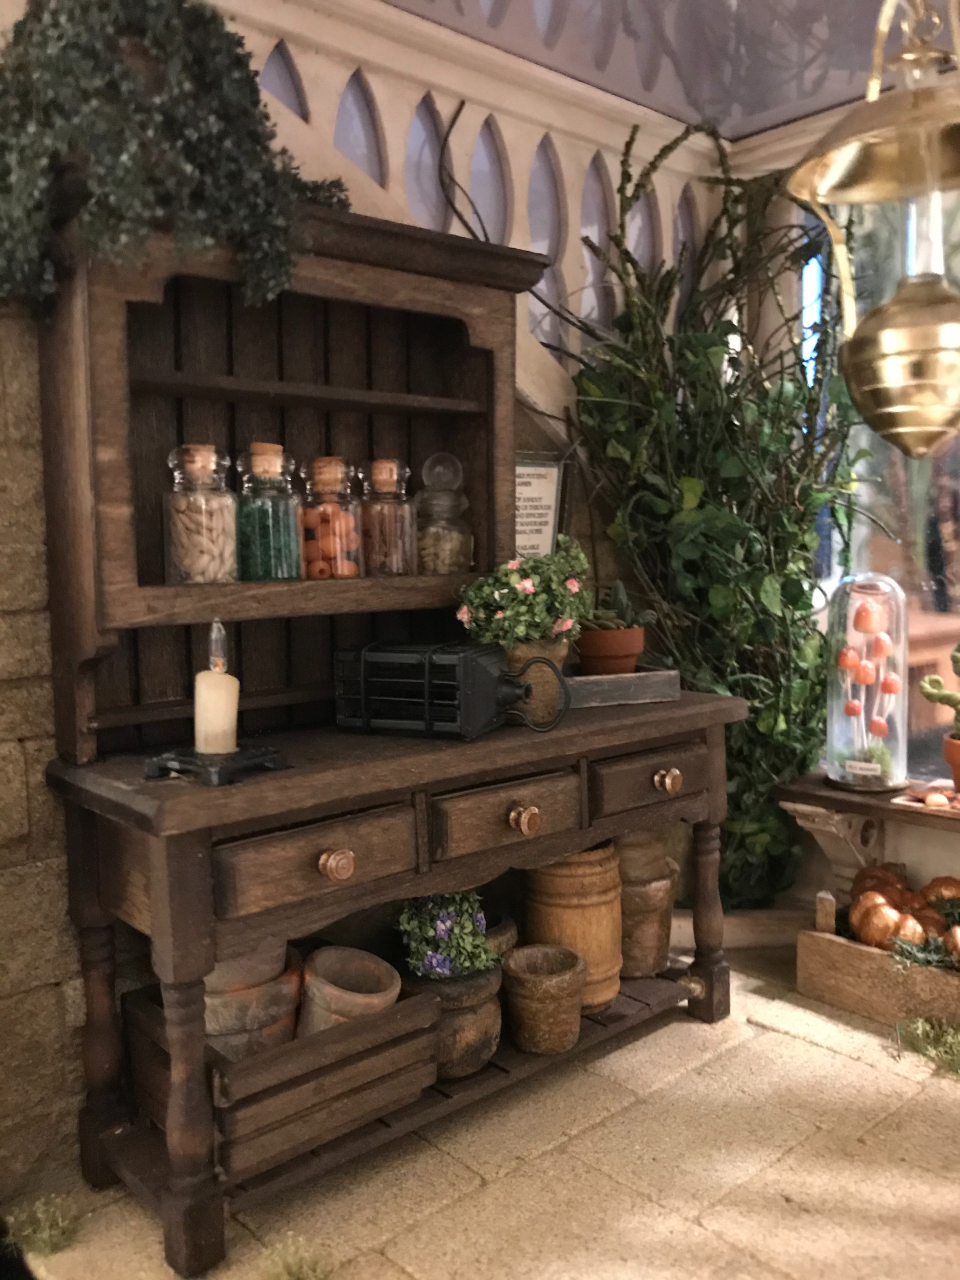 The herbology room includes a variety of plants and mini jars filled with a selection of seeds.